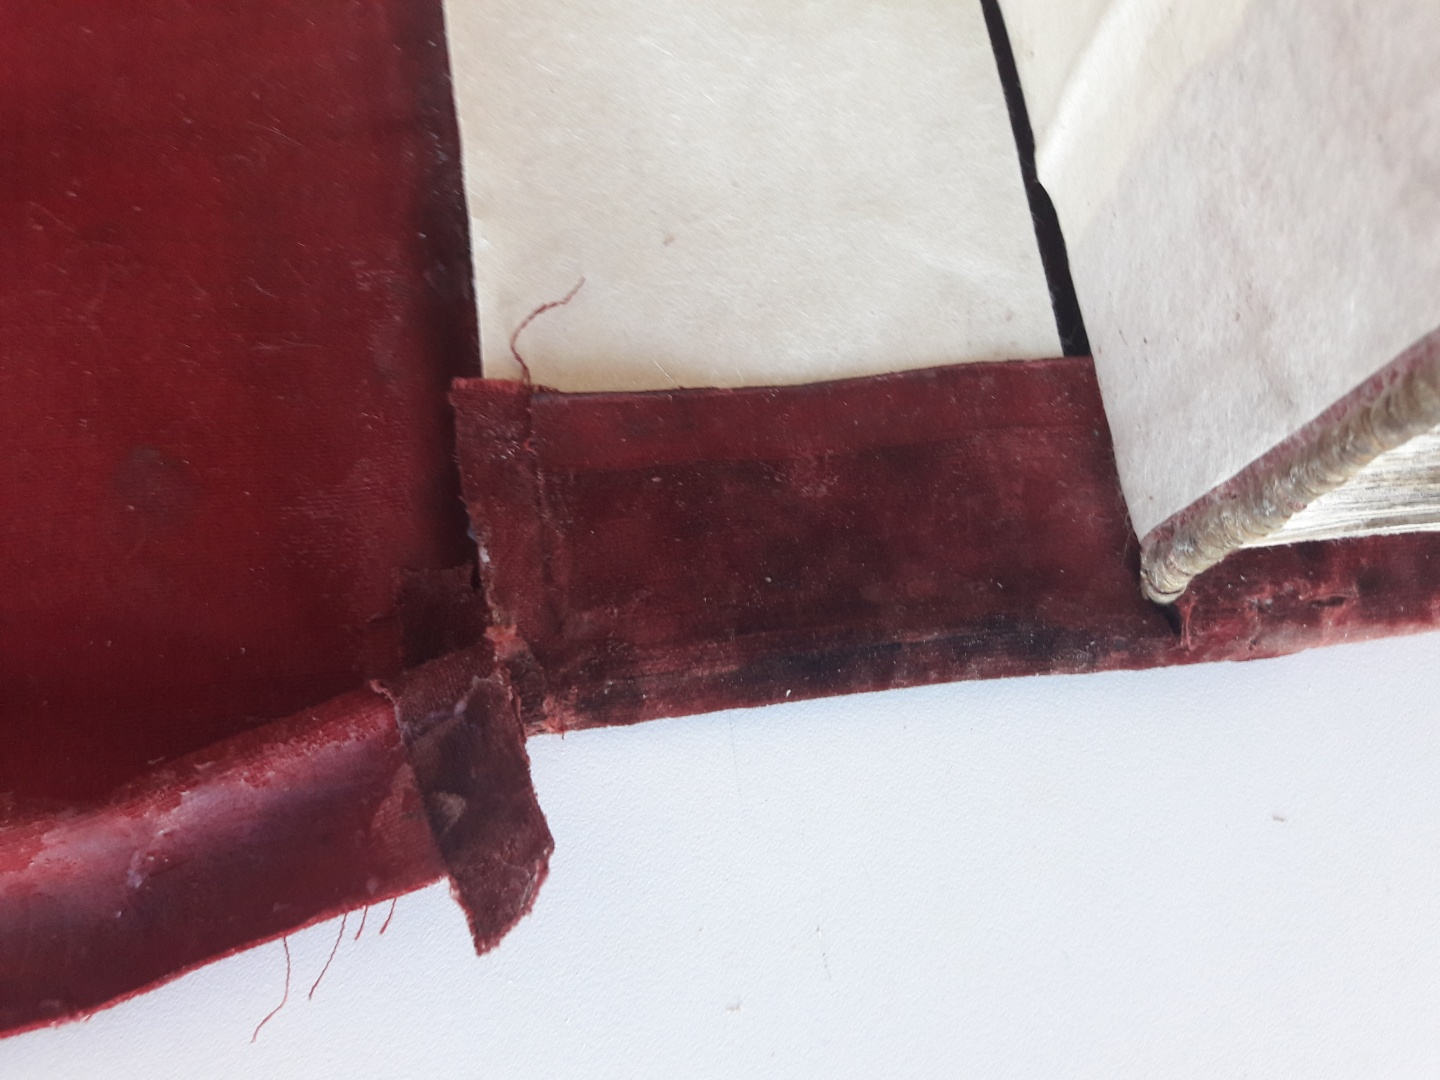 ill 41. 2cm slits were cut into the fabric for pasting the turned-back part of the fabric onto the inner side of the cover. 1 cm on the very border of the fabric was left uncut. © Tulvi Turo